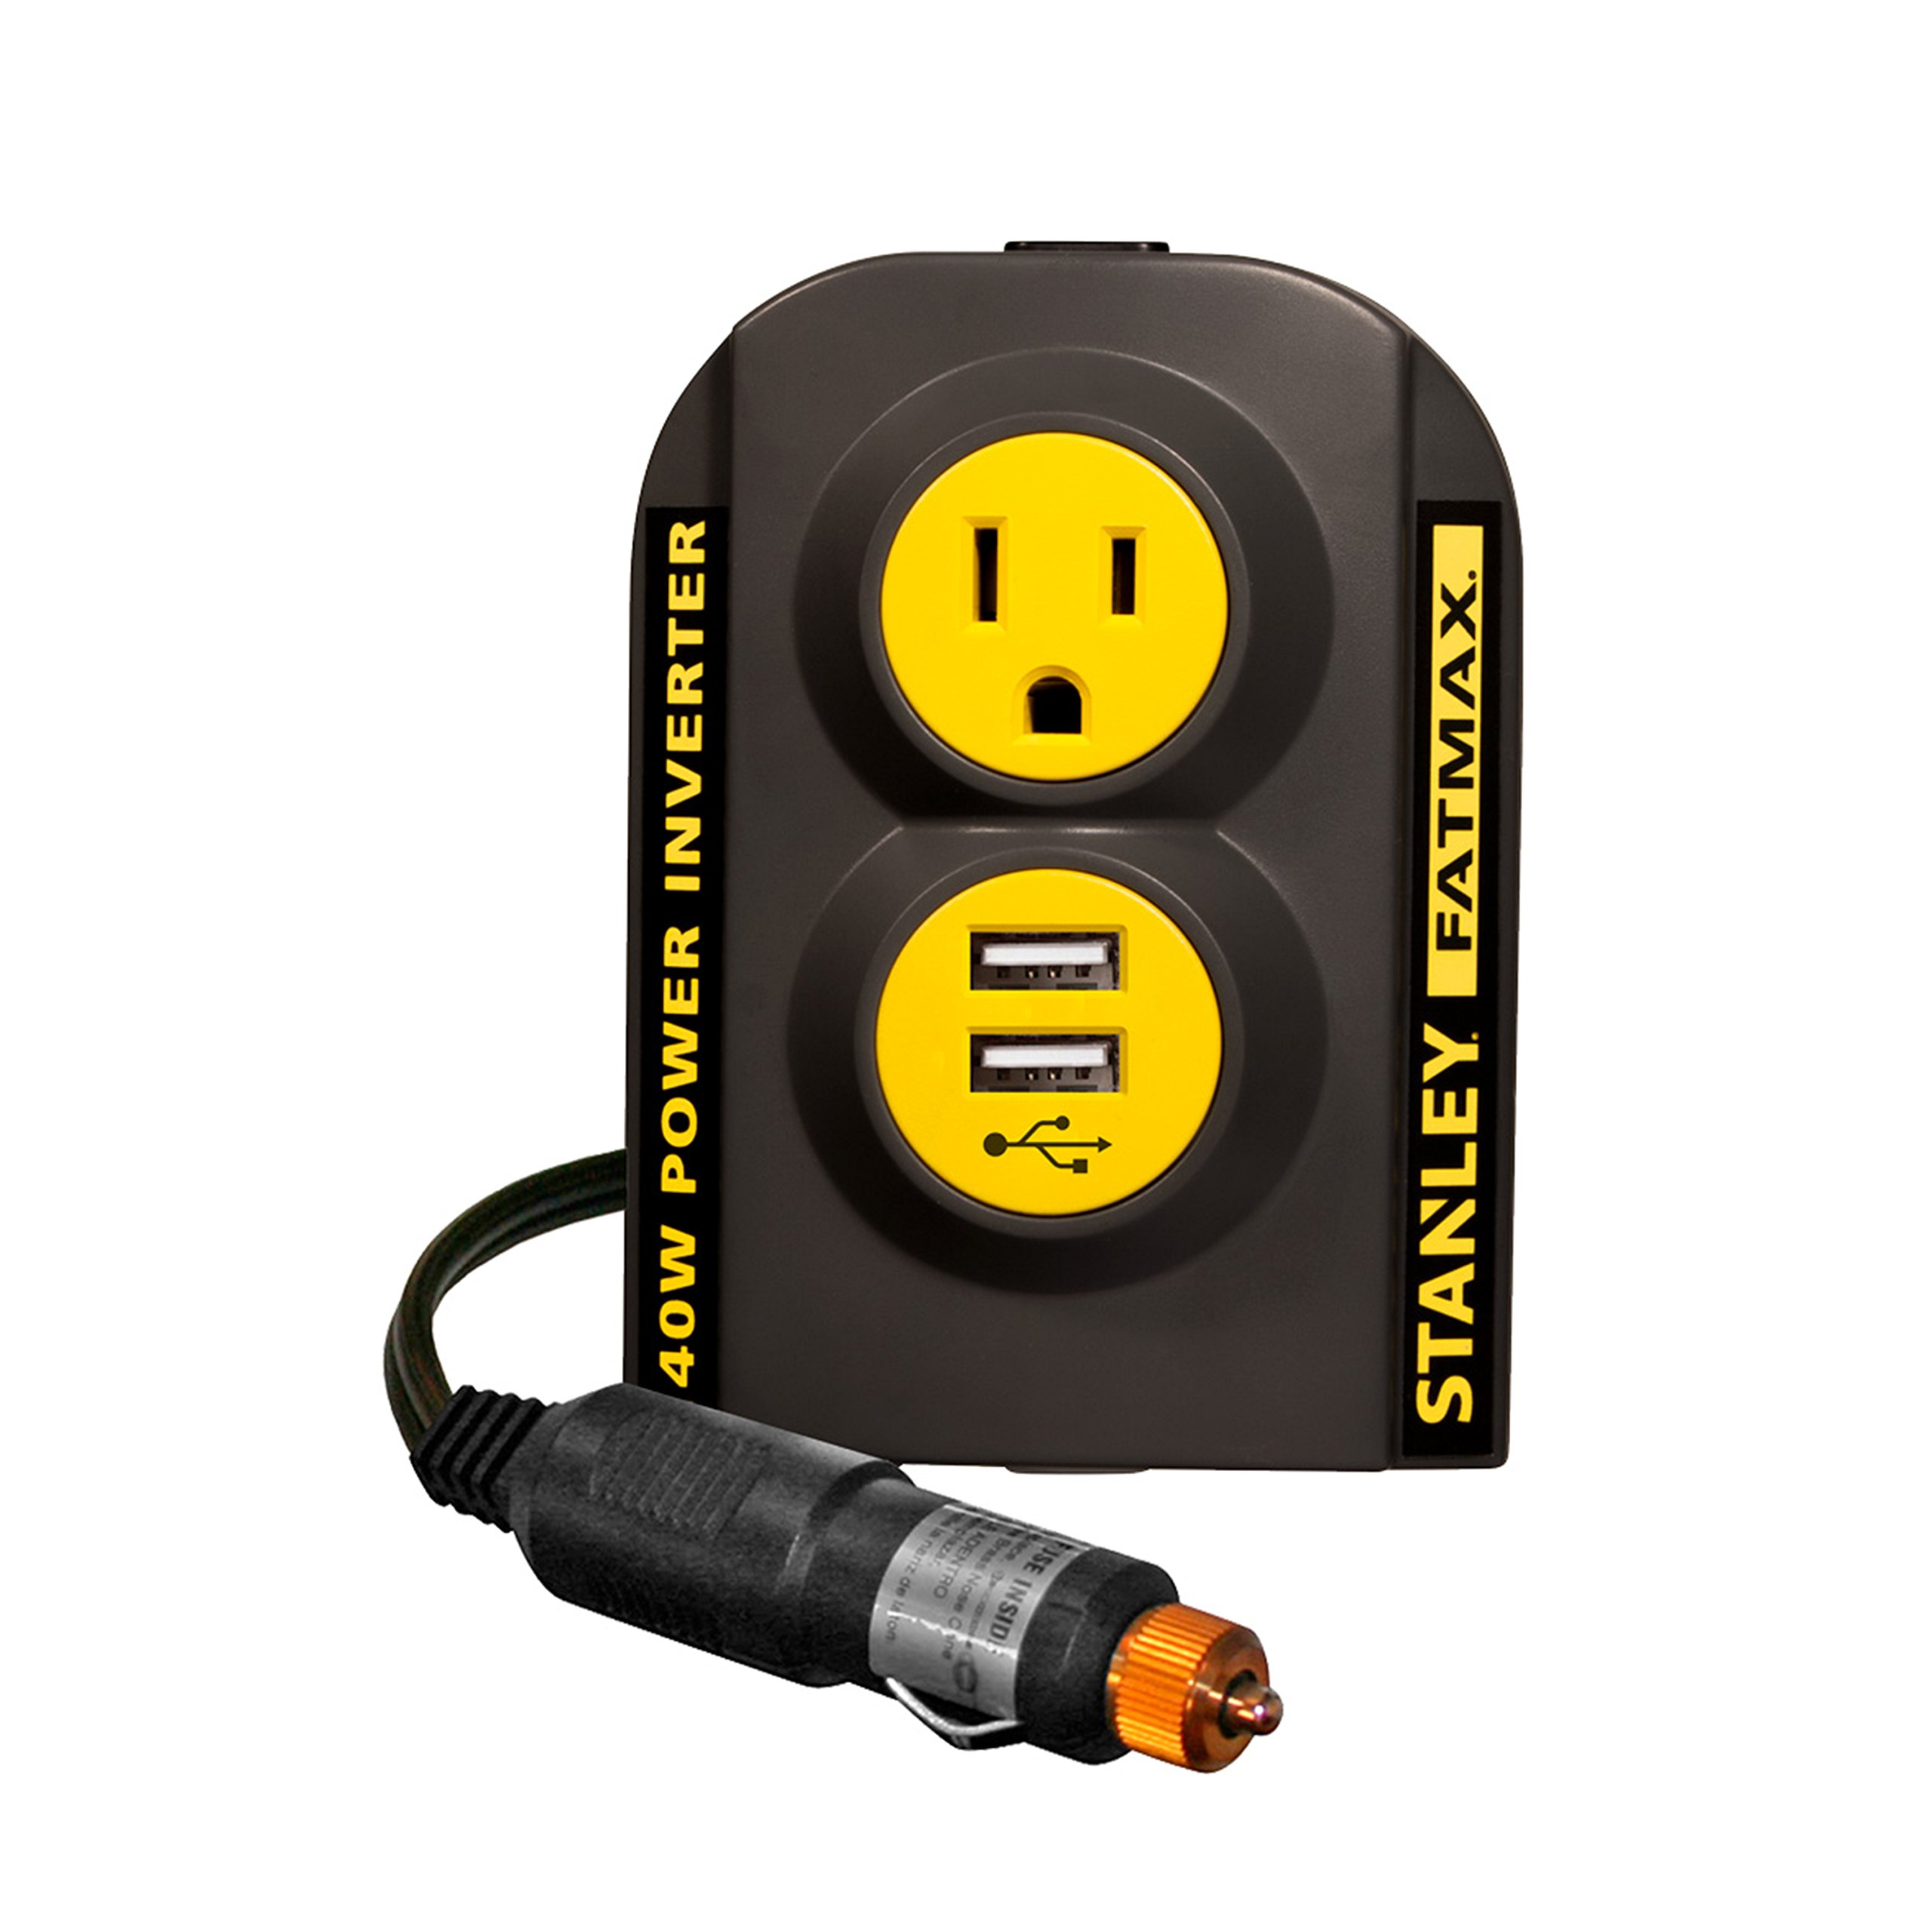 STANLEY FATMAX PCI140 140W Power Inverter: 12V DC to 120V AC Power Outlet with Dual USB Ports by STANLEY